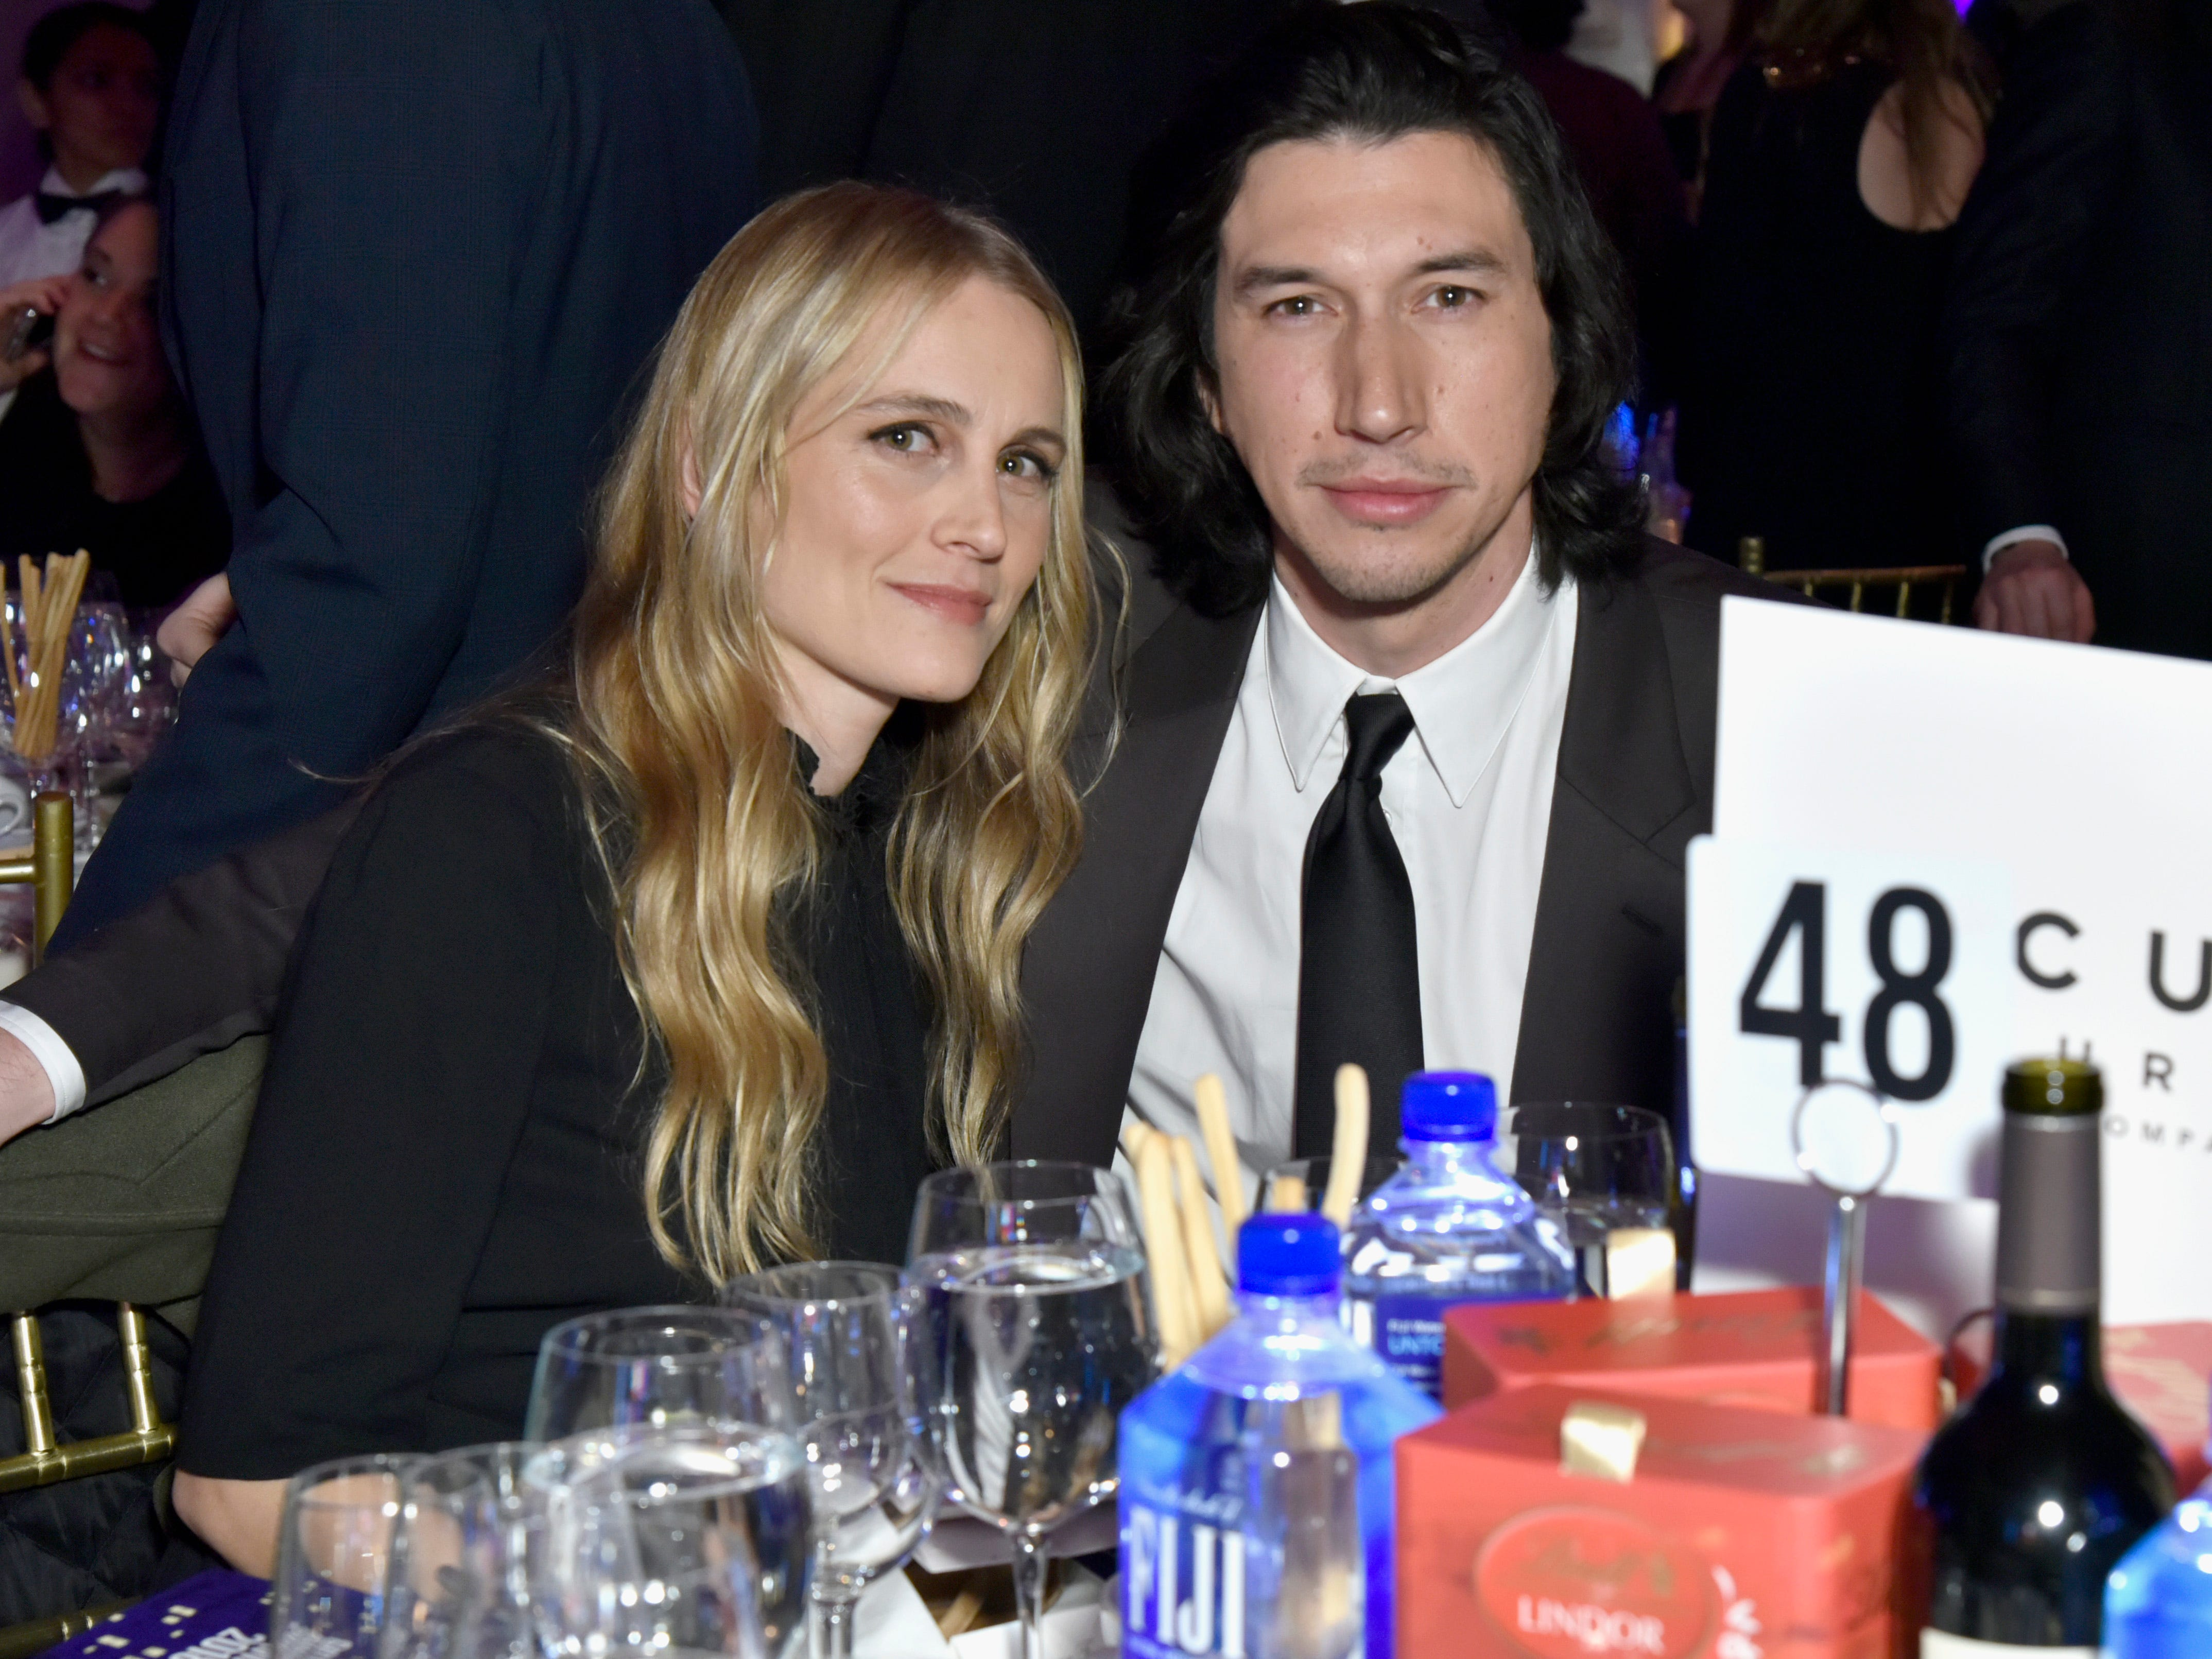 NEW YORK, NY - NOVEMBER 26:  Joanne Tucker (L) and Adam Driver attend the 2018 IFP Gotham Awards with FIJI Water at Cipriani, Wall Street on November 26, 2018 in New York City.  (Photo by Eugene Gologursky/Getty Images for FIJI Water) ORG XMIT: 775261572 ORIG FILE ID: 1065579790